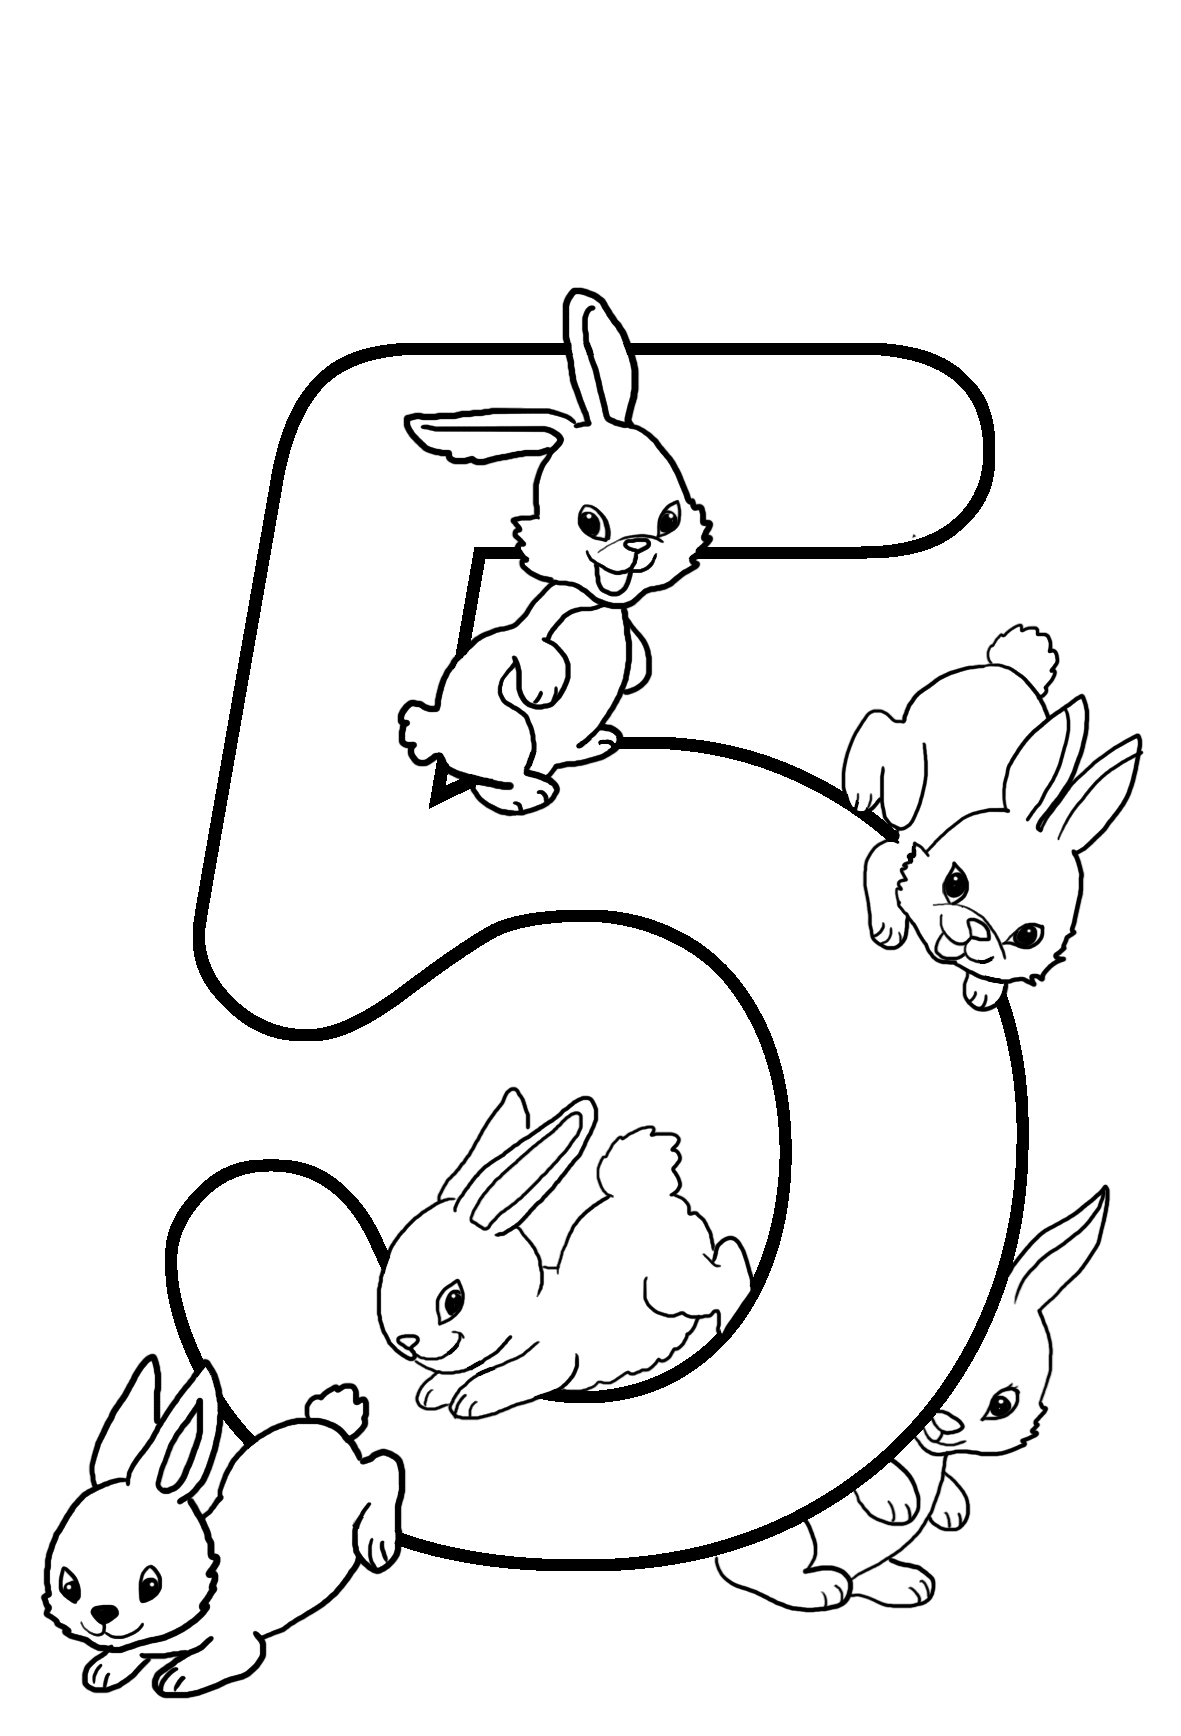 5th birthday coloring with rabbits